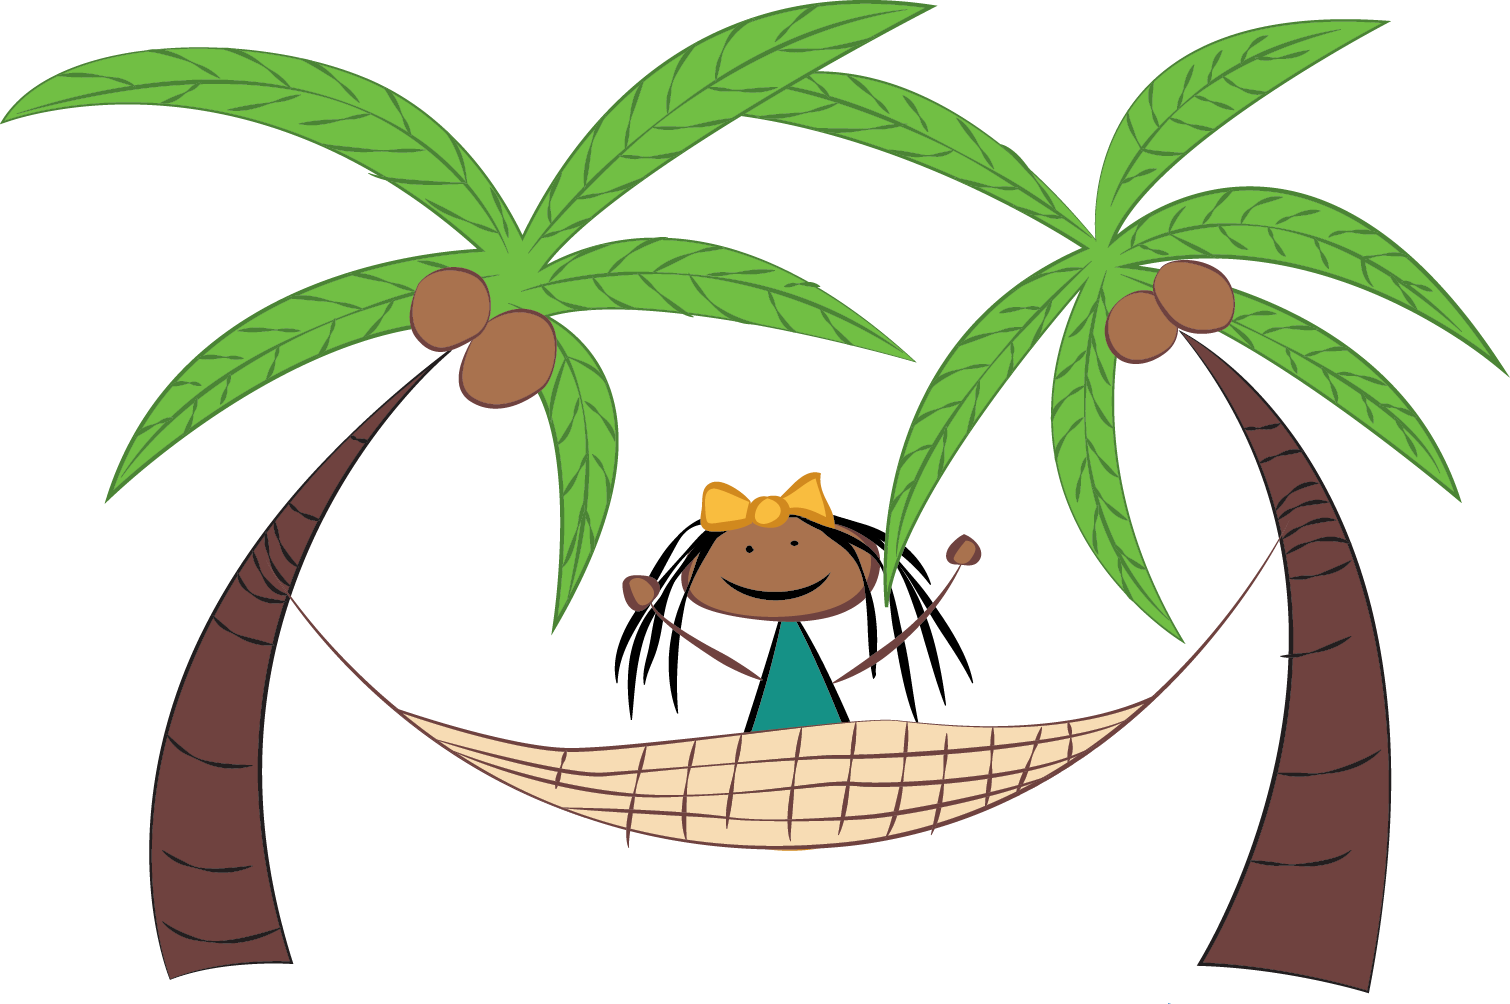 Moving clipart palm tree. Psychiatric services st croix